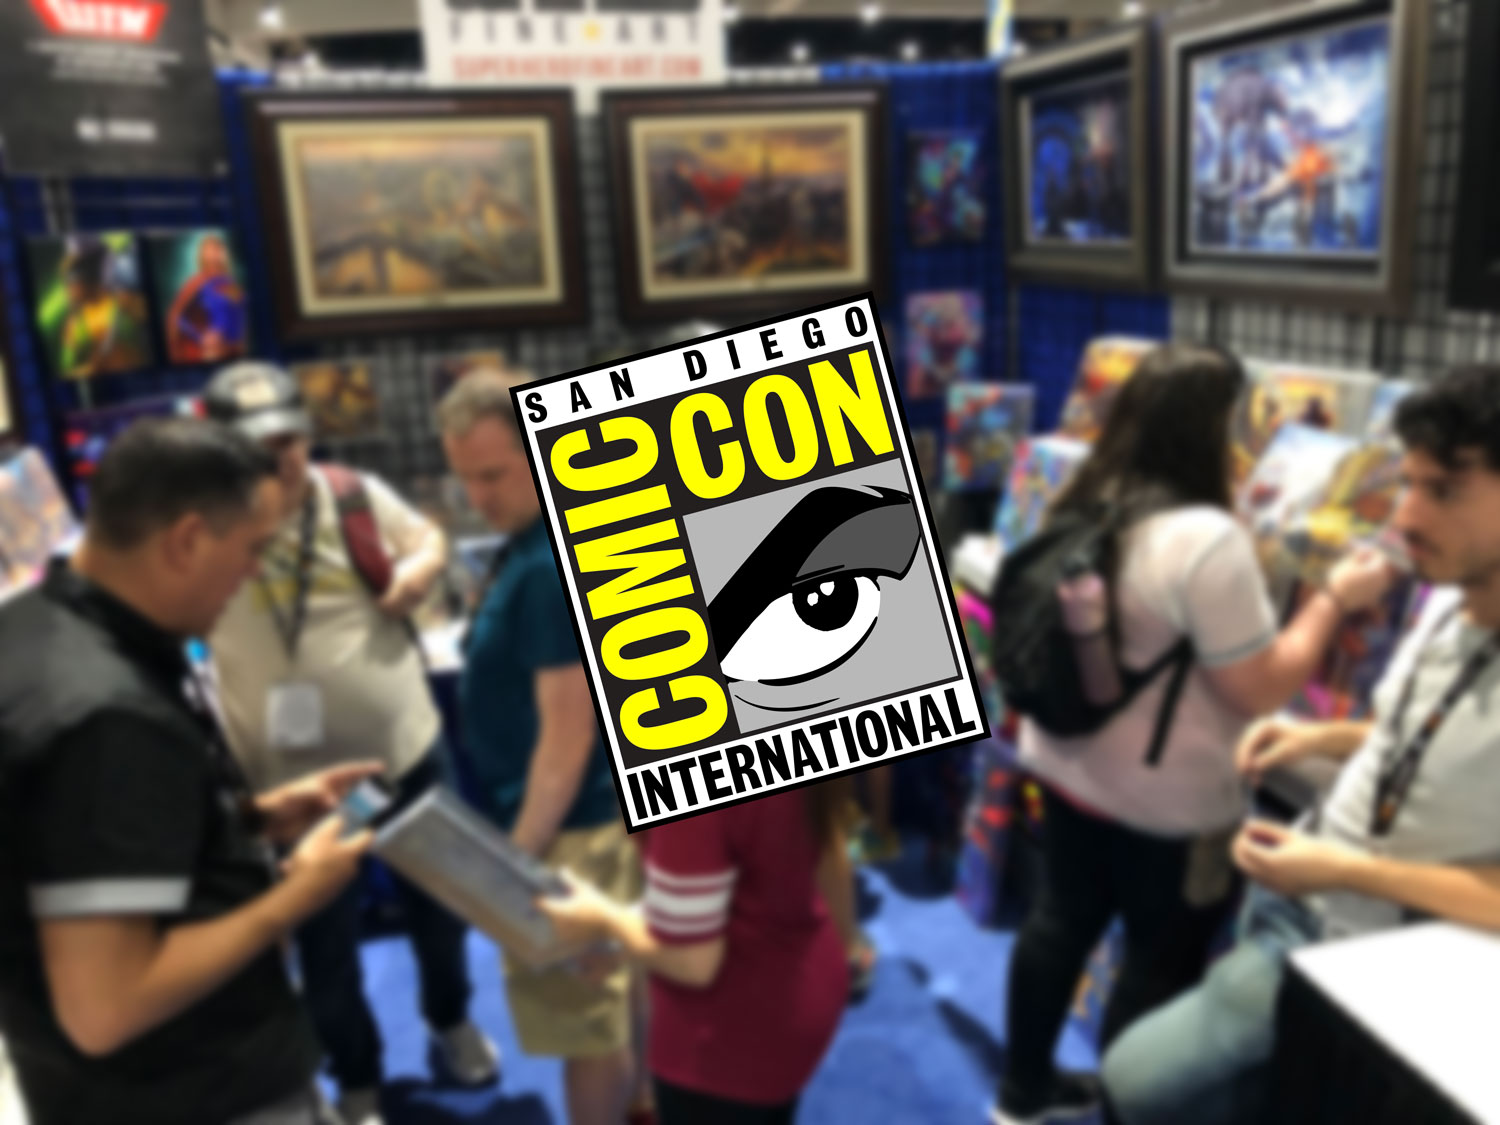 Thank you SDCC 2019 Attendees and Fans!